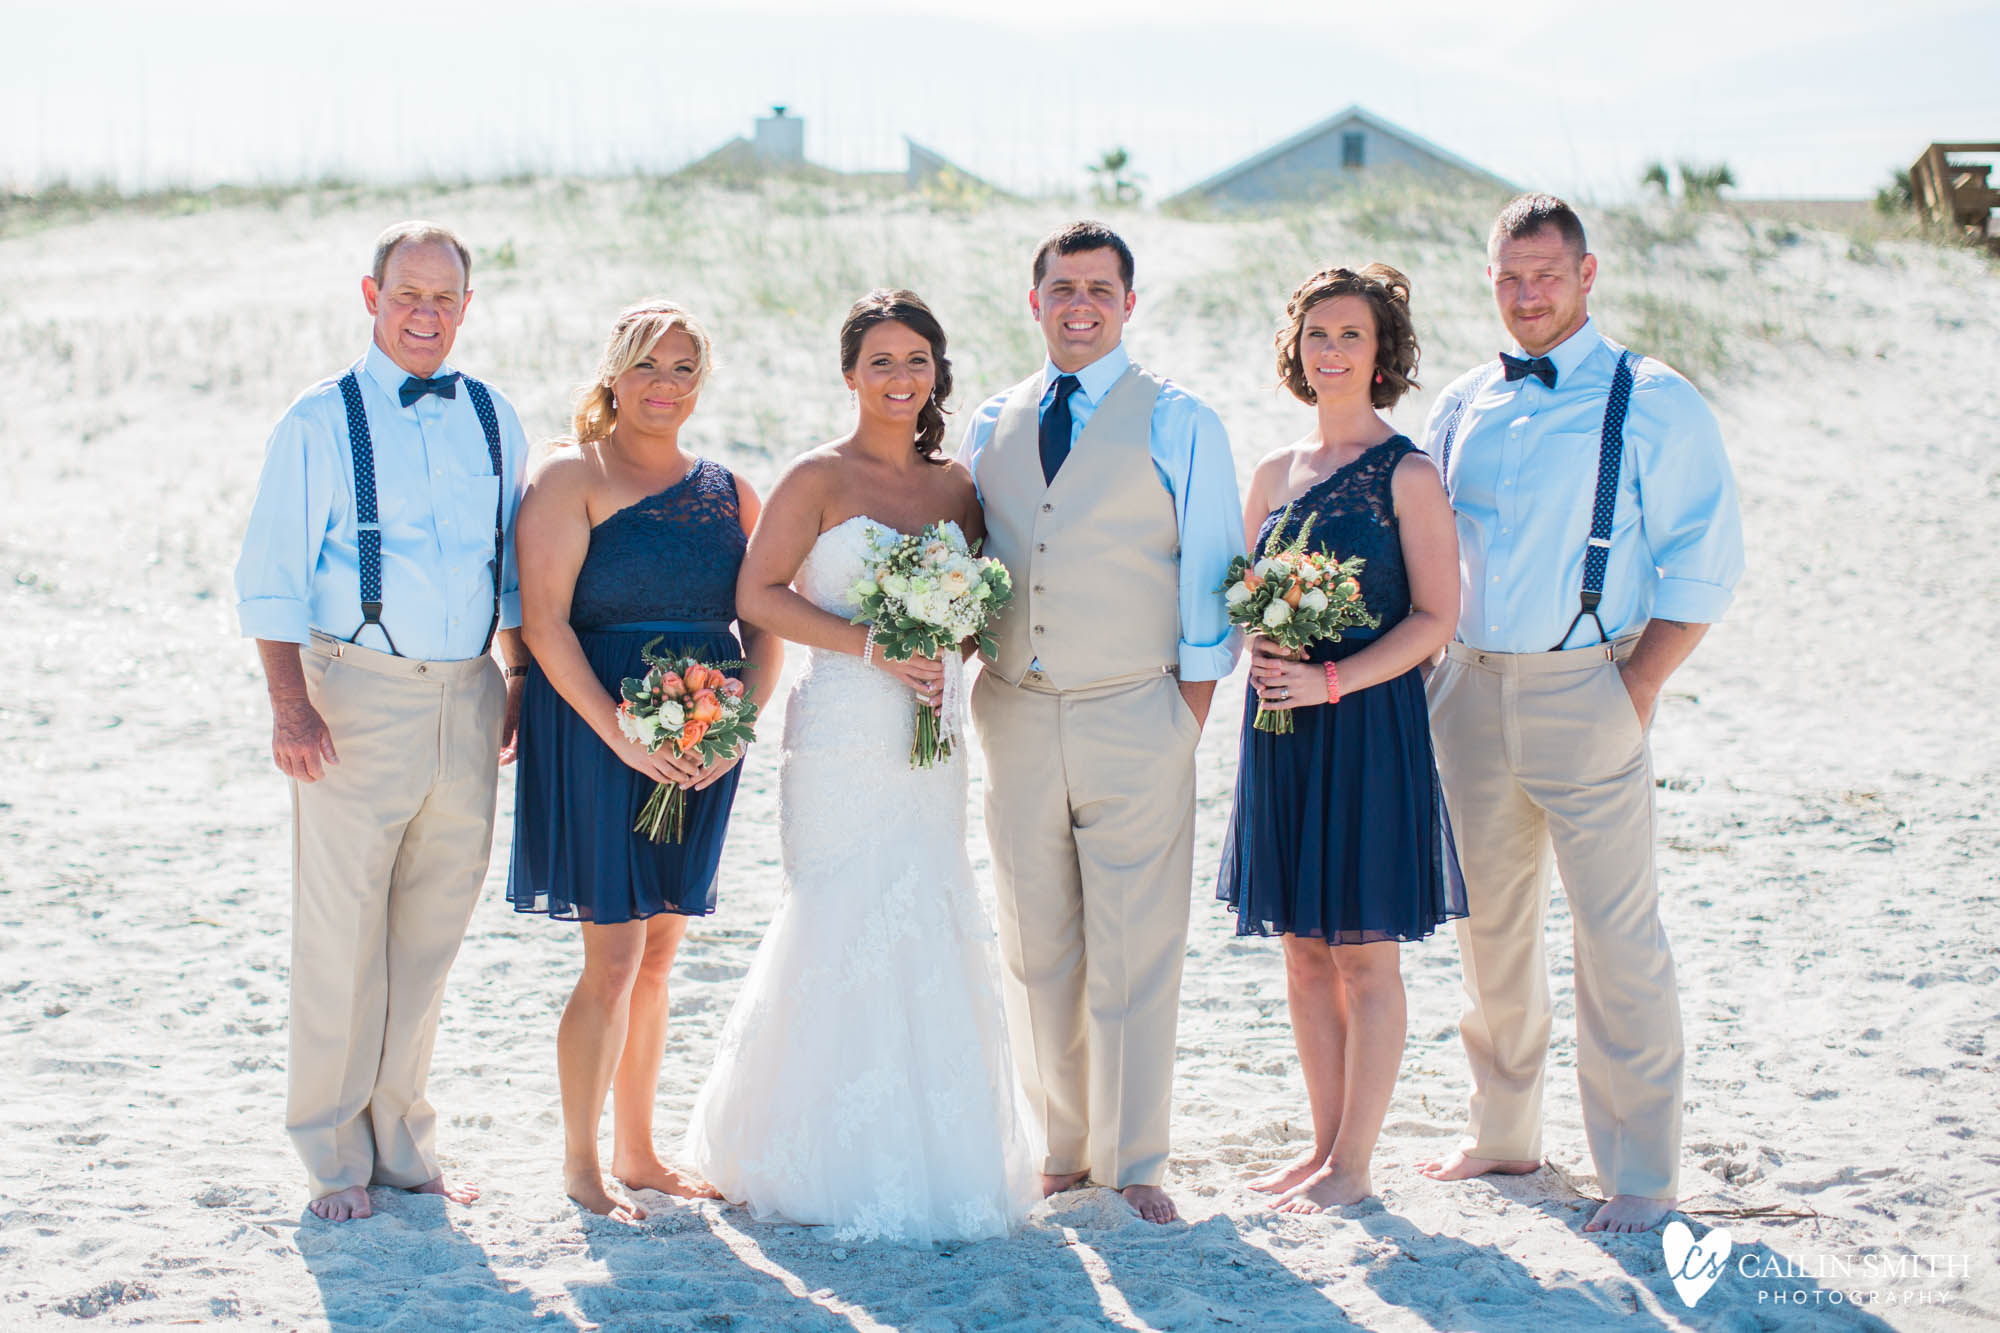 Kimberly_Ross_Amelia_Island_Wedding_Photography_022.jpg